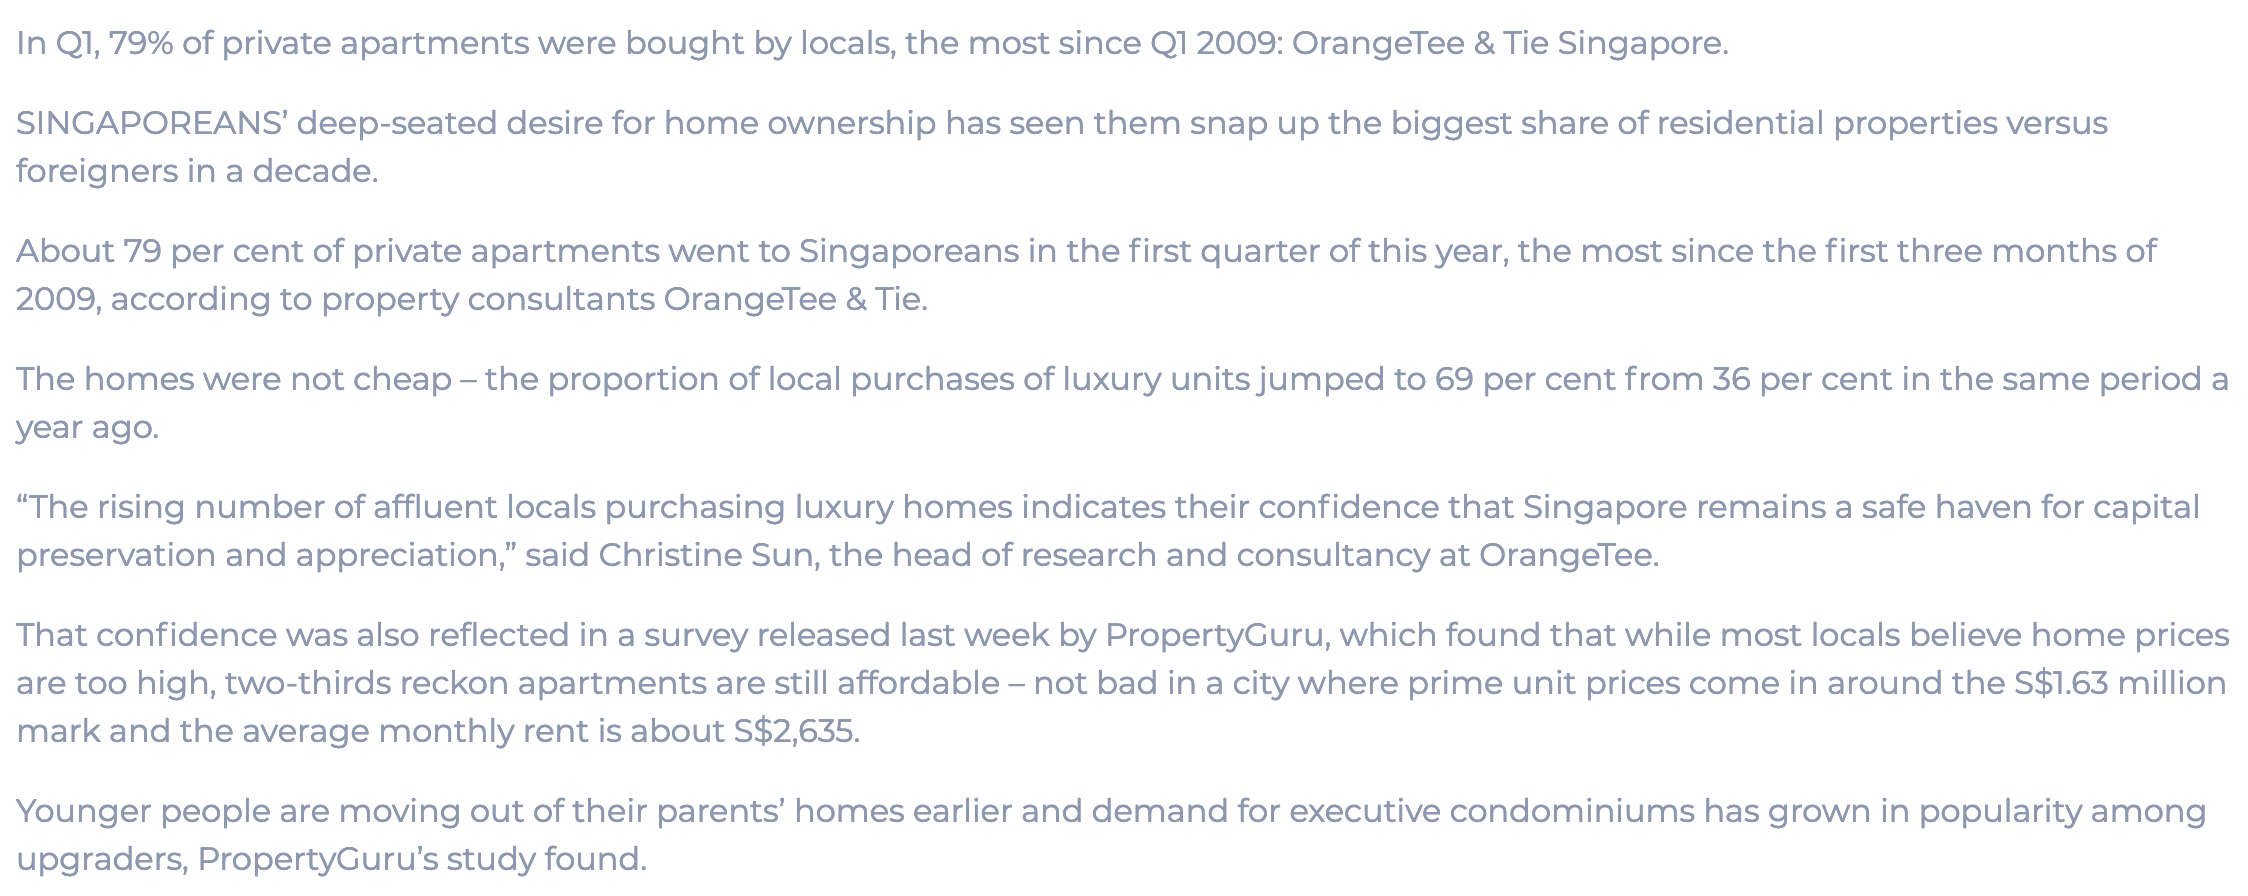 Singaporeans-Share-of-Local-Home-Purchases-Surges-in-Q1